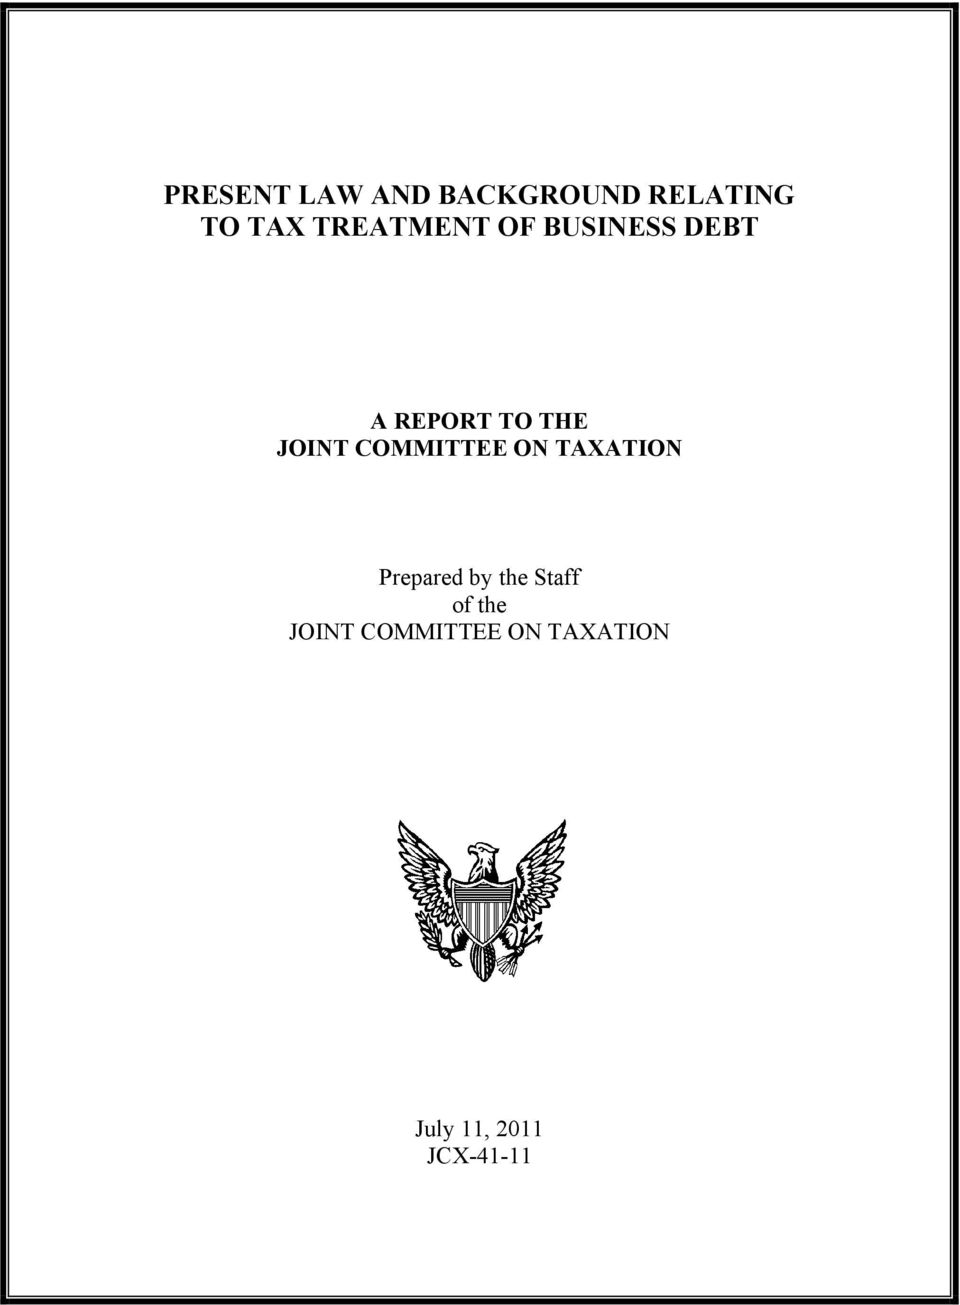 COMMITTEE ON TAXATION Prepared by the Staff of